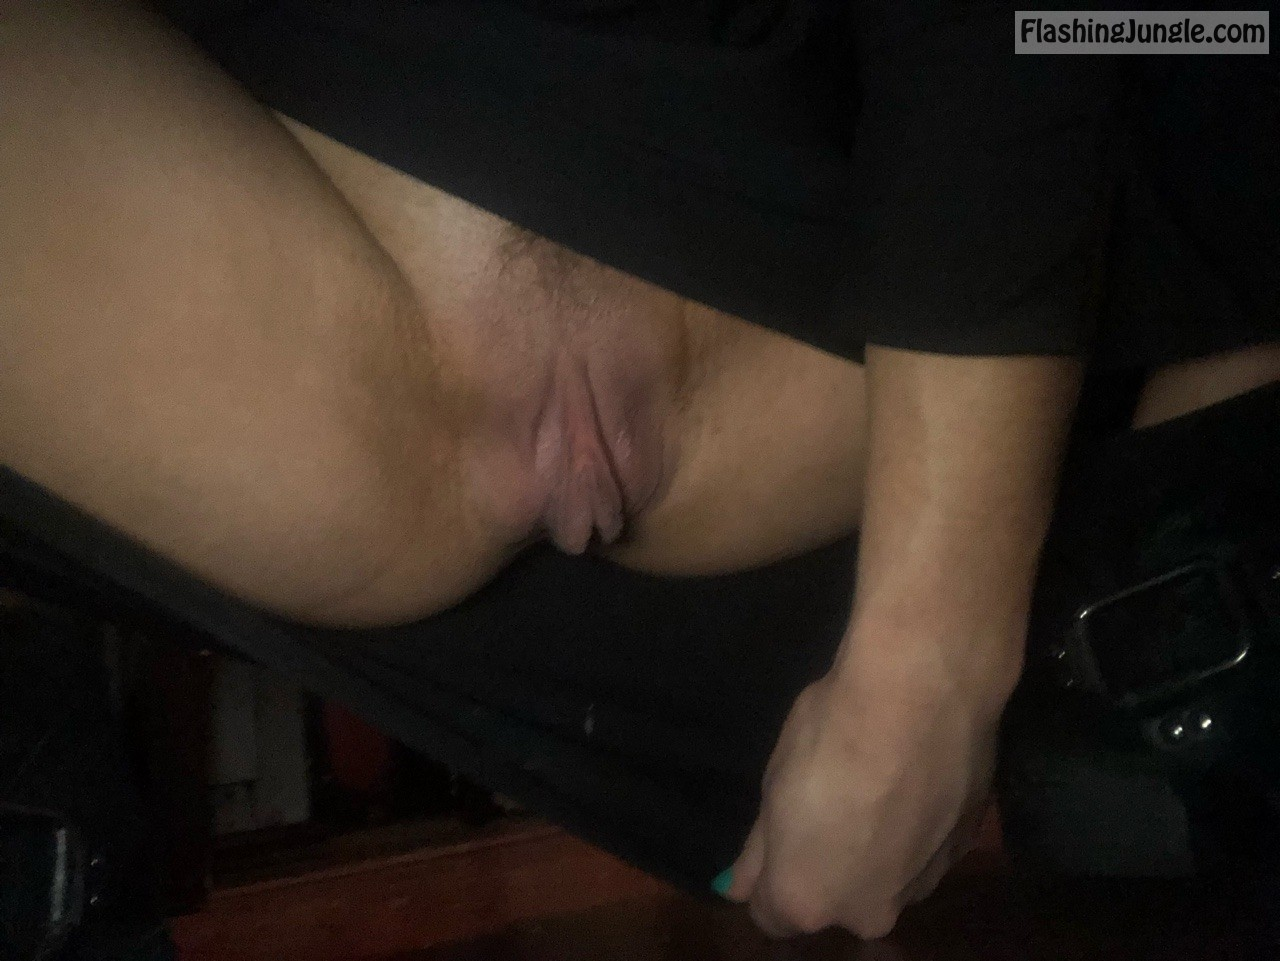 Big clit flashing at work upskirt pussy flash no panties